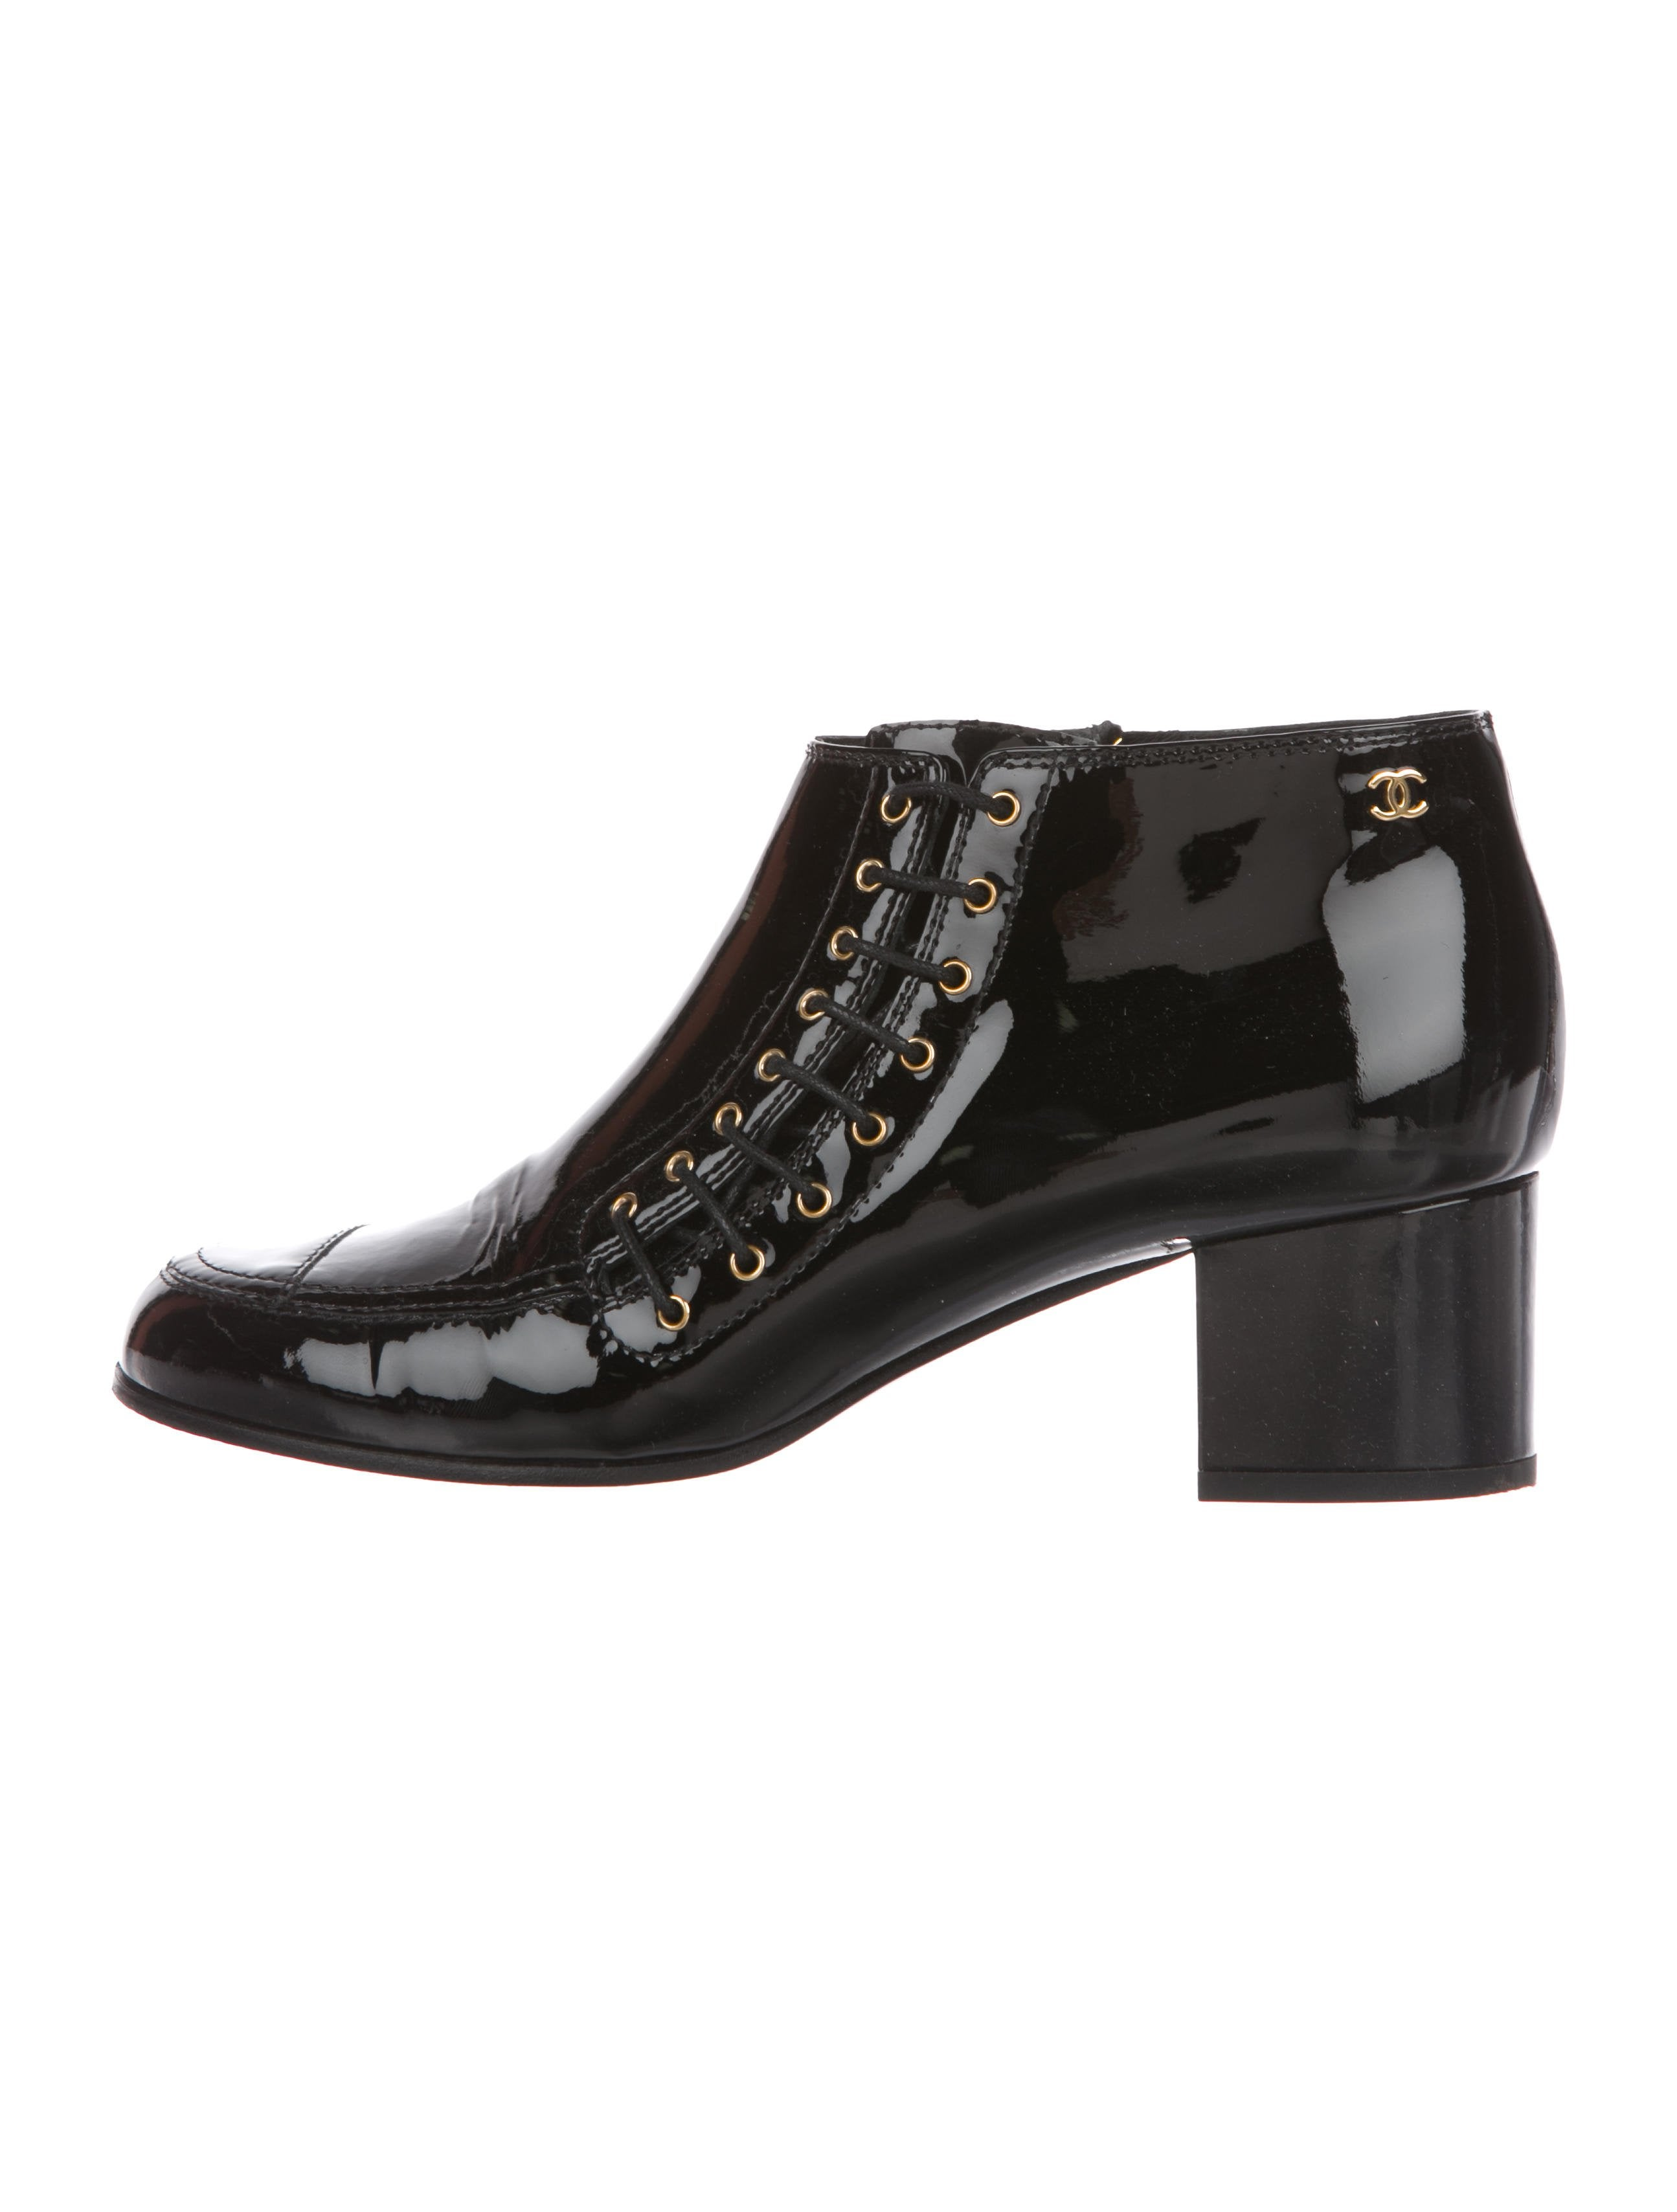 adb13cbdb88a Chanel Patent Leather CC Booties - Shoes - CHA279079